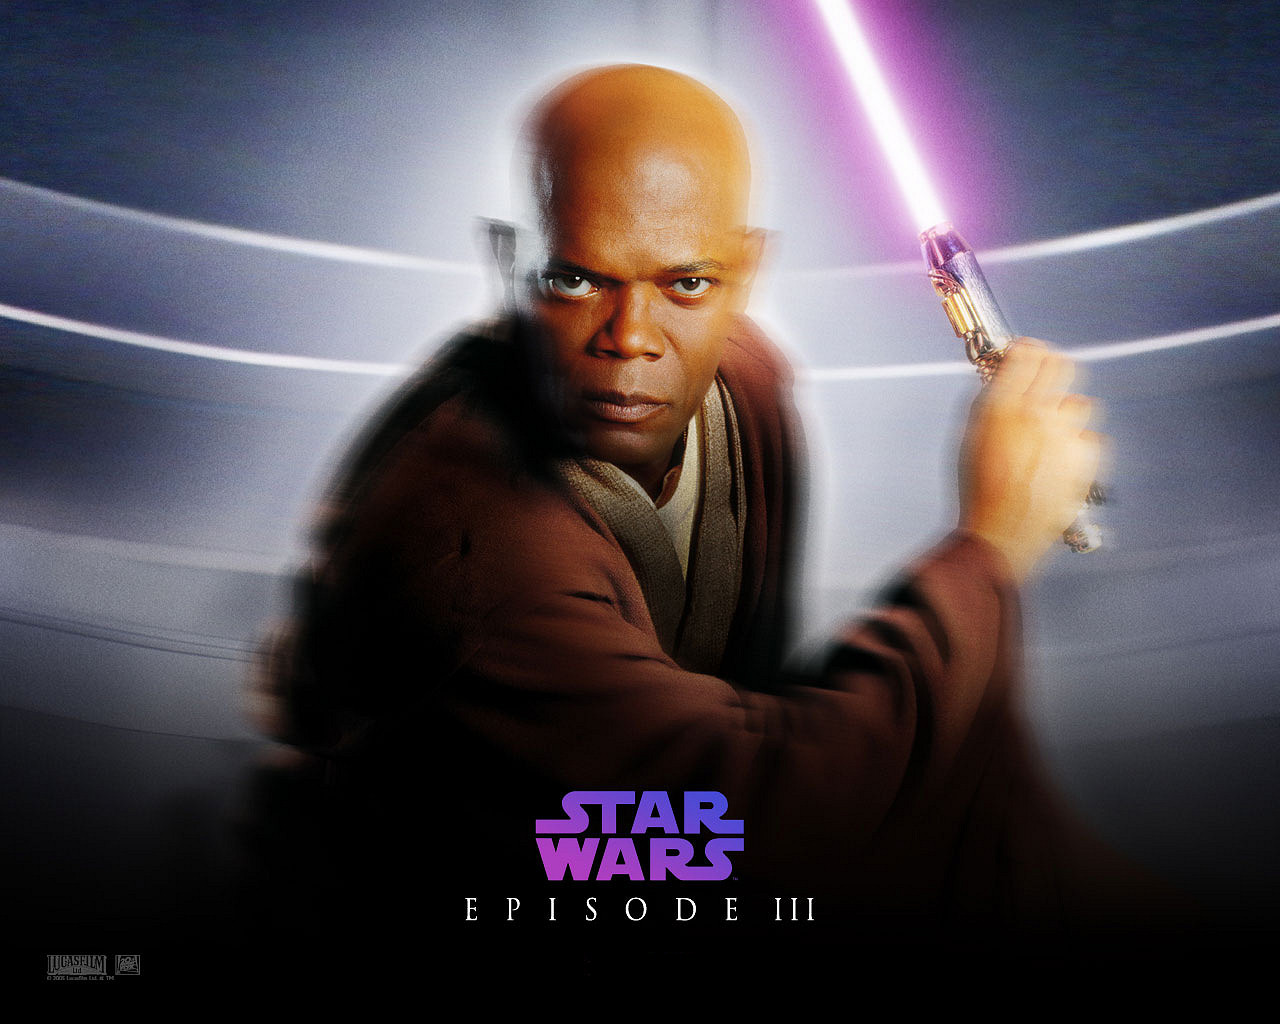 Star Wars Images Mace Windu Hd Wallpaper And Background Photos 41385